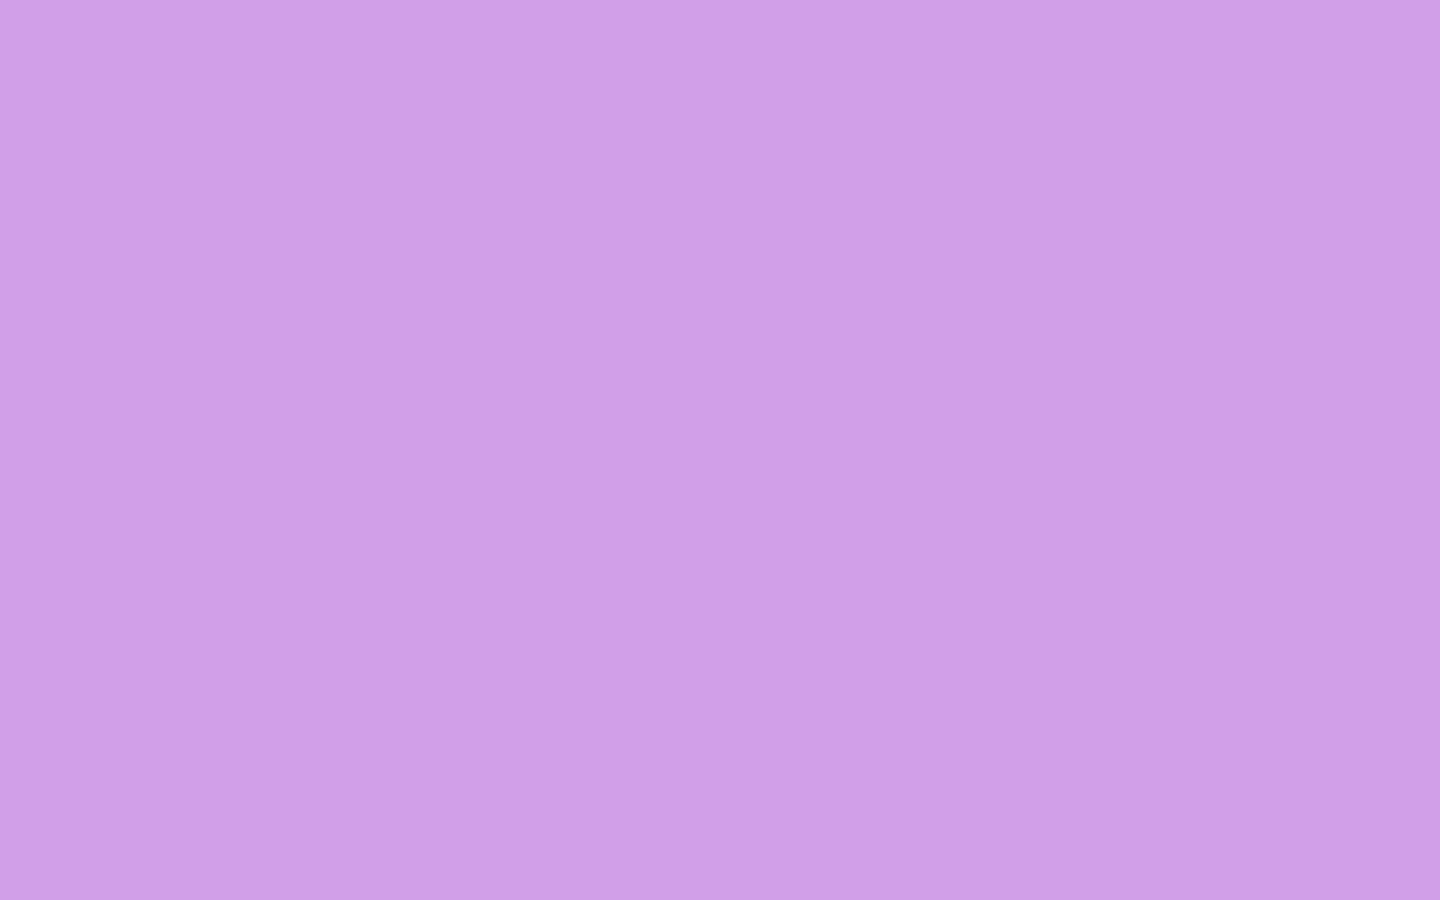 1440x900 Bright Ube Solid Color Background